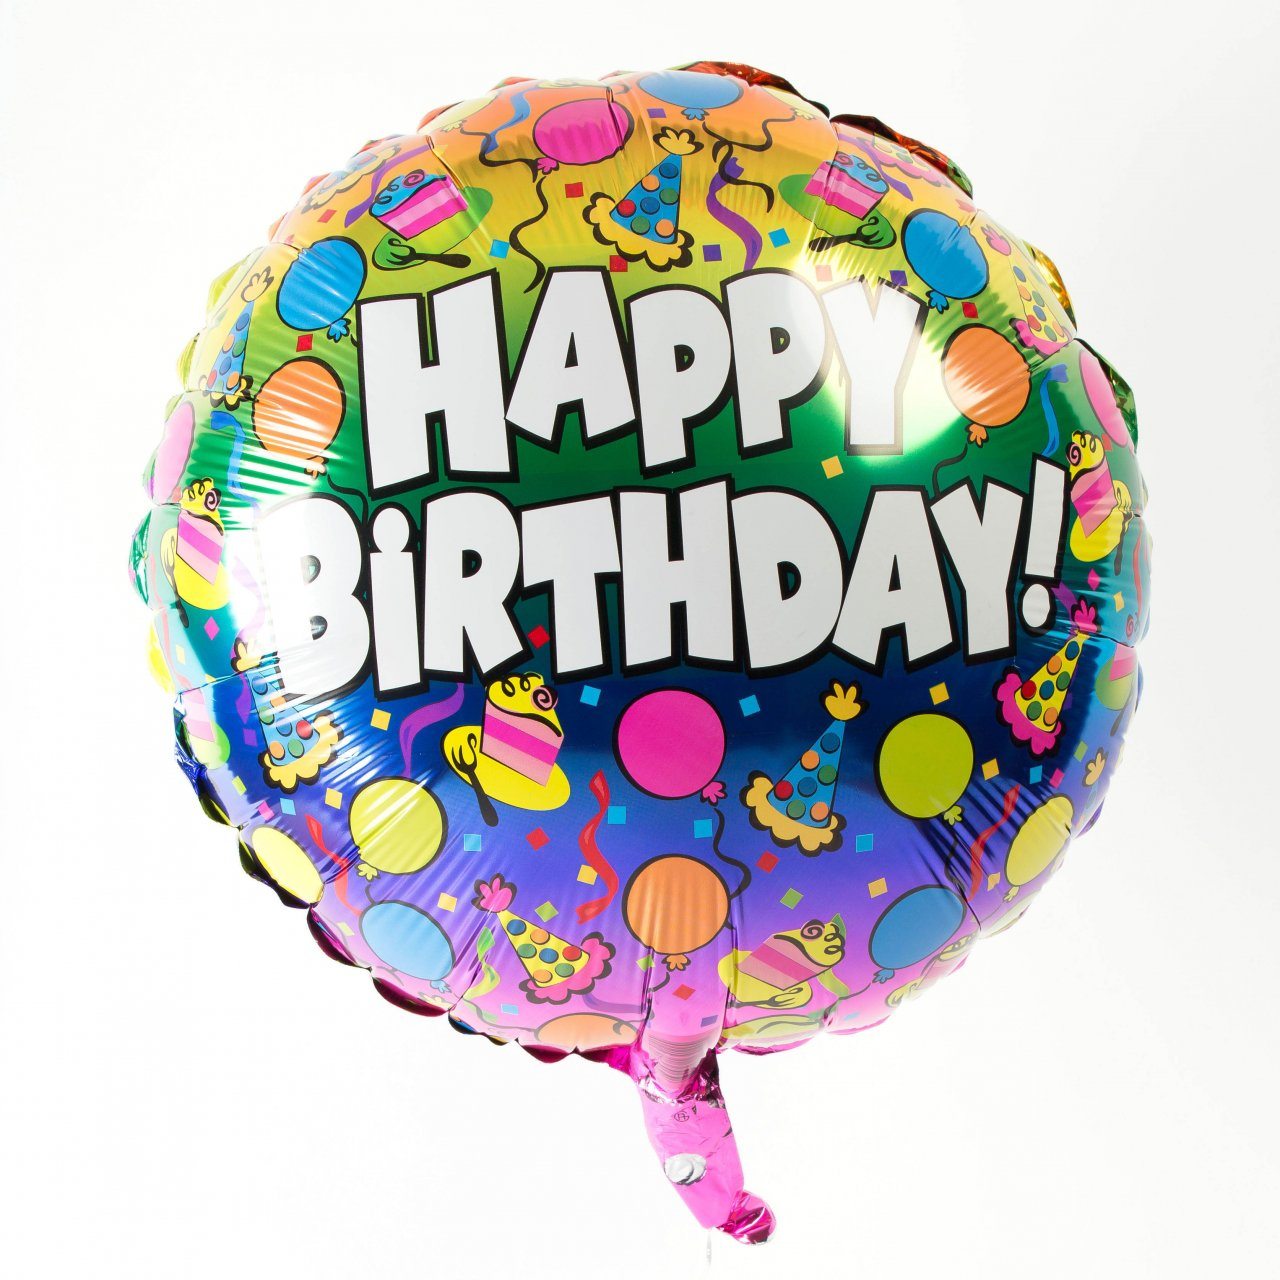 image balloons happy birthday ; HBB